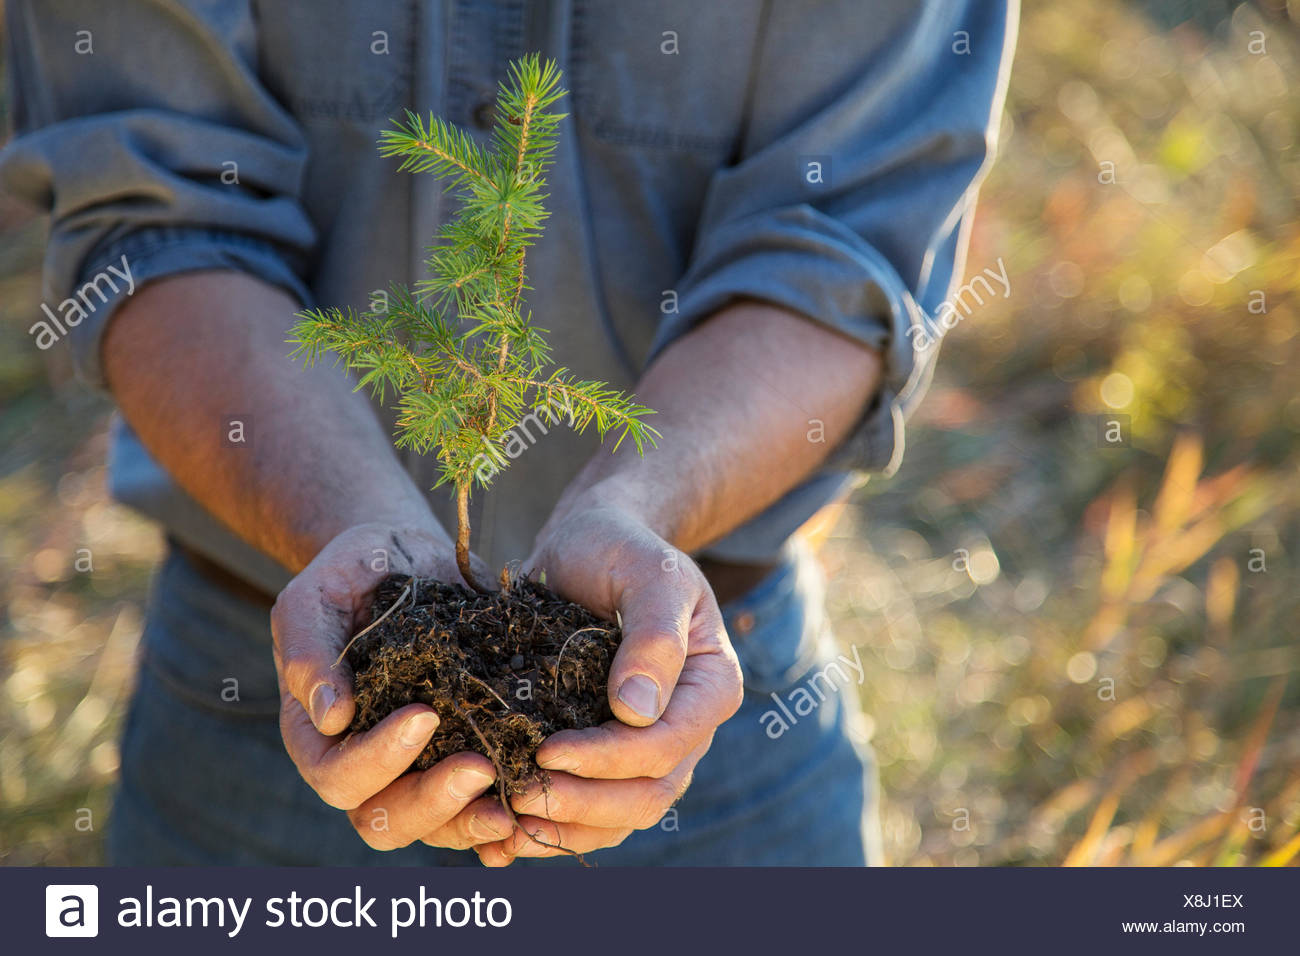 Man cupping tree sapling Photo Stock